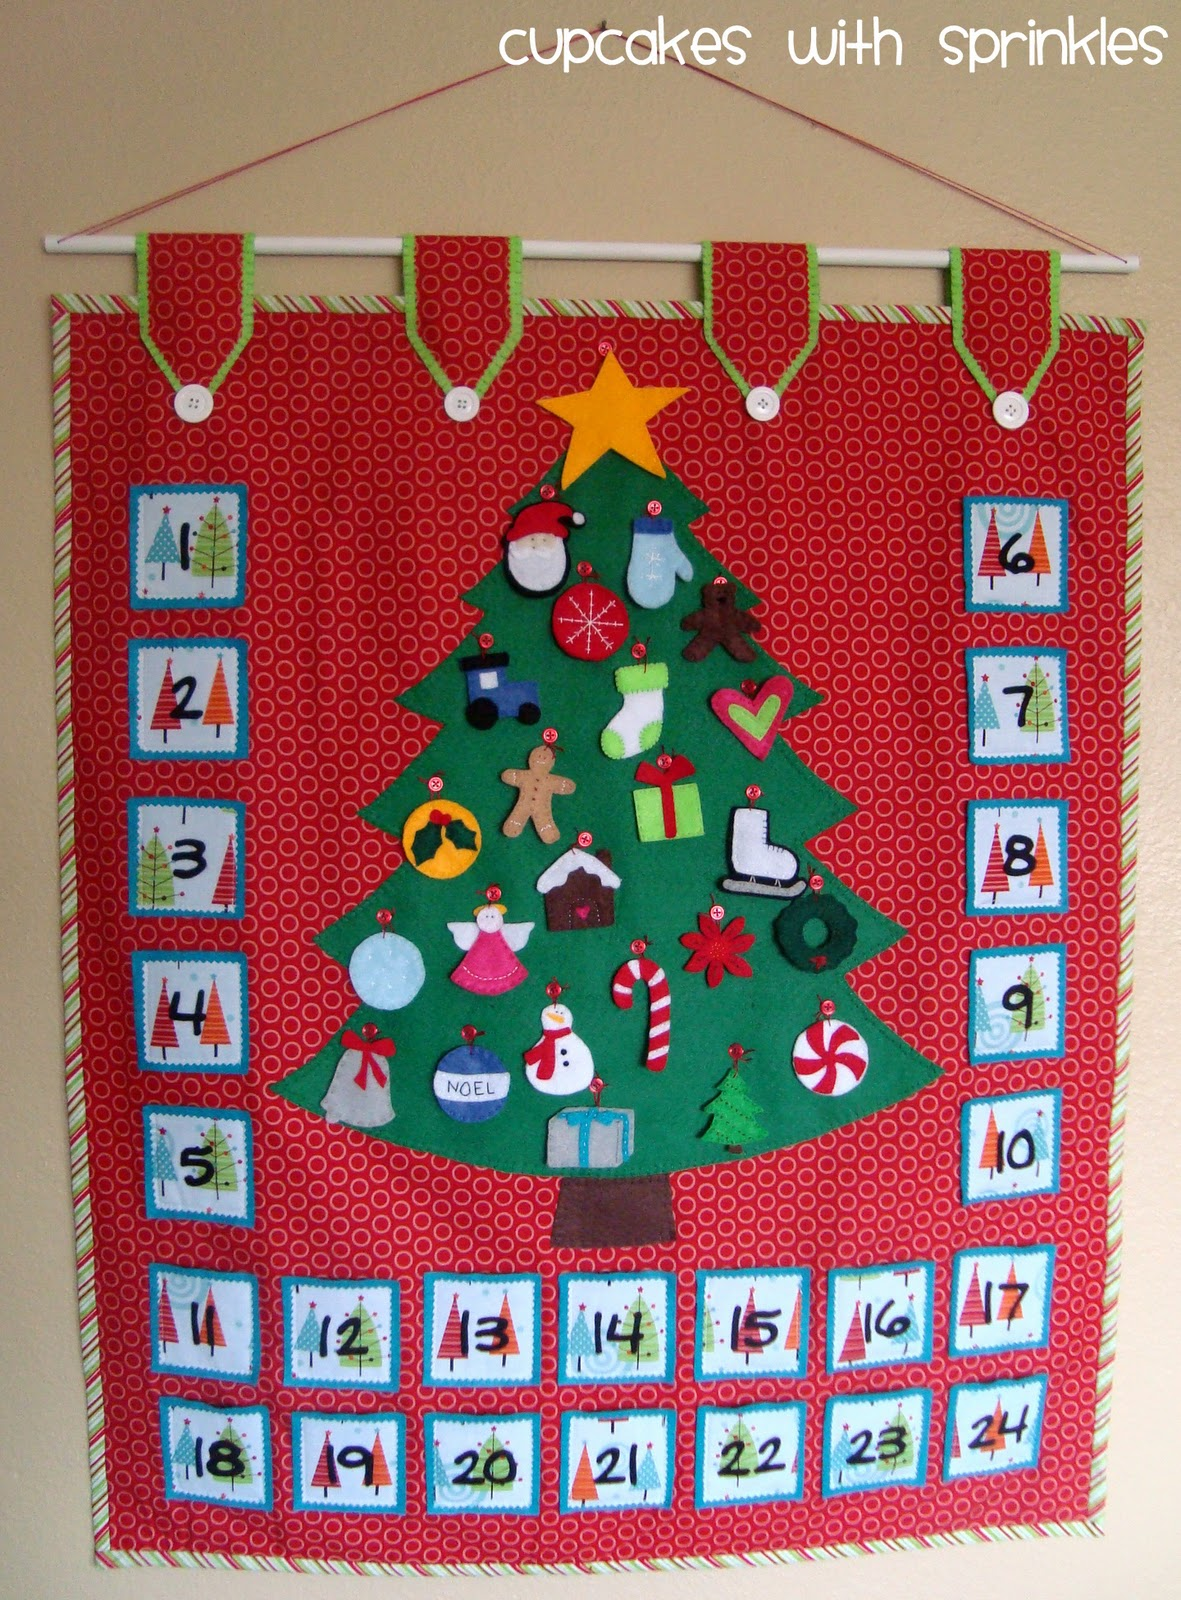 Sewn Advent Calendar Ideas : Cupcake with sprinkles advent calendar